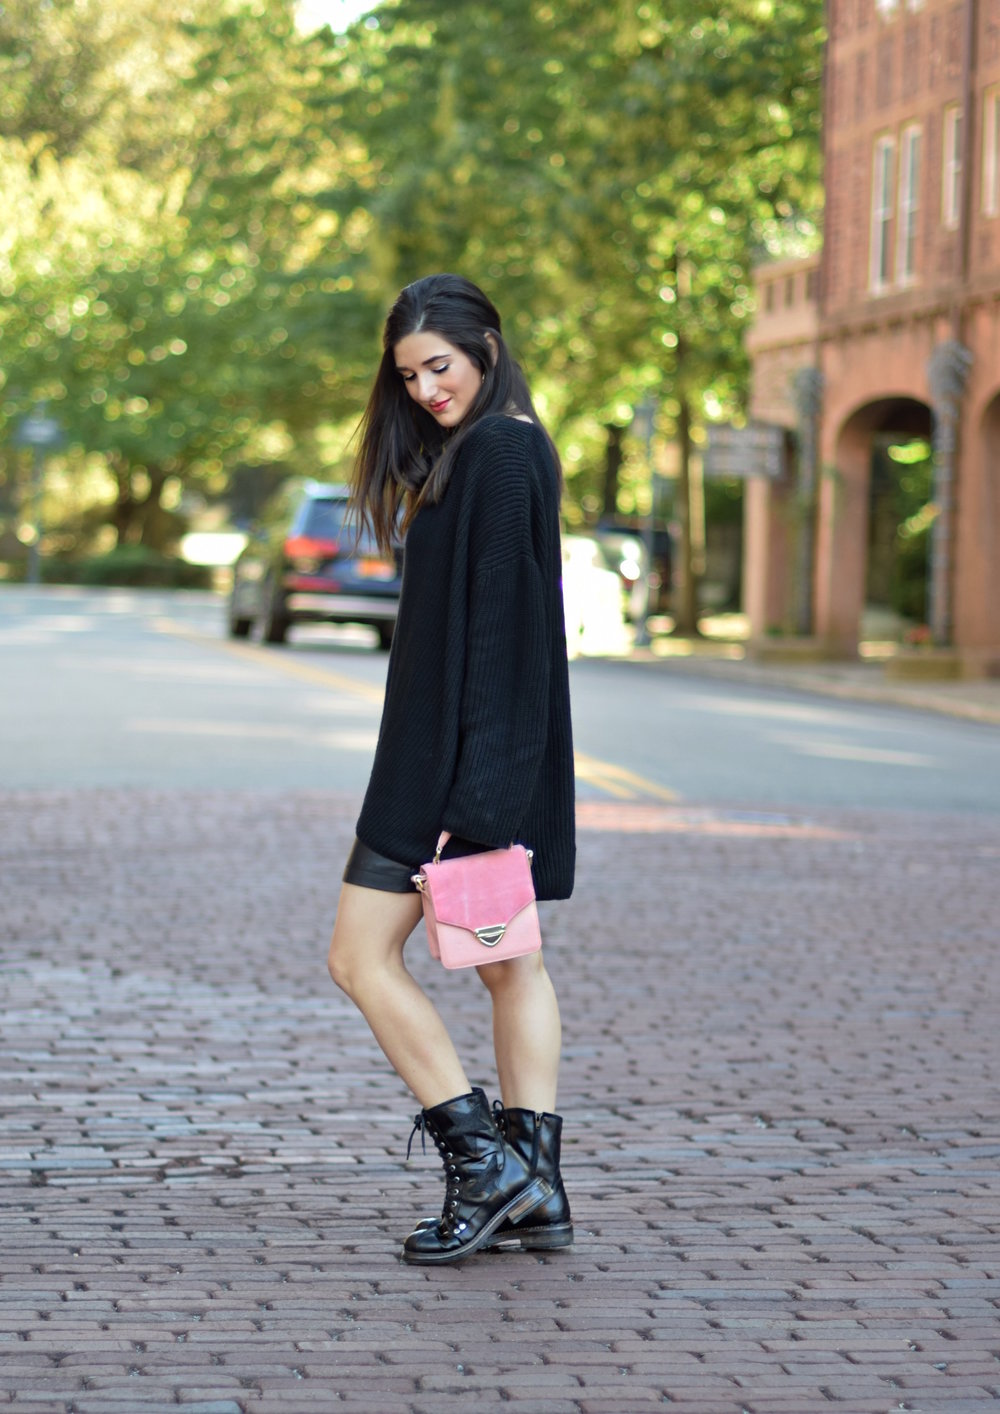 Oversized Black Sweater Star Combat Boots 10 Holiday Gift Ideas Esther Santer Fashion Blog NYC Street Style Blogger Outfit OOTD Trendy All Black Fall Winter Look Comfortable Cozy Urban Outfitters Shopping Girl  Feminine Women Shoes Pink Handbag Pretty.JPG